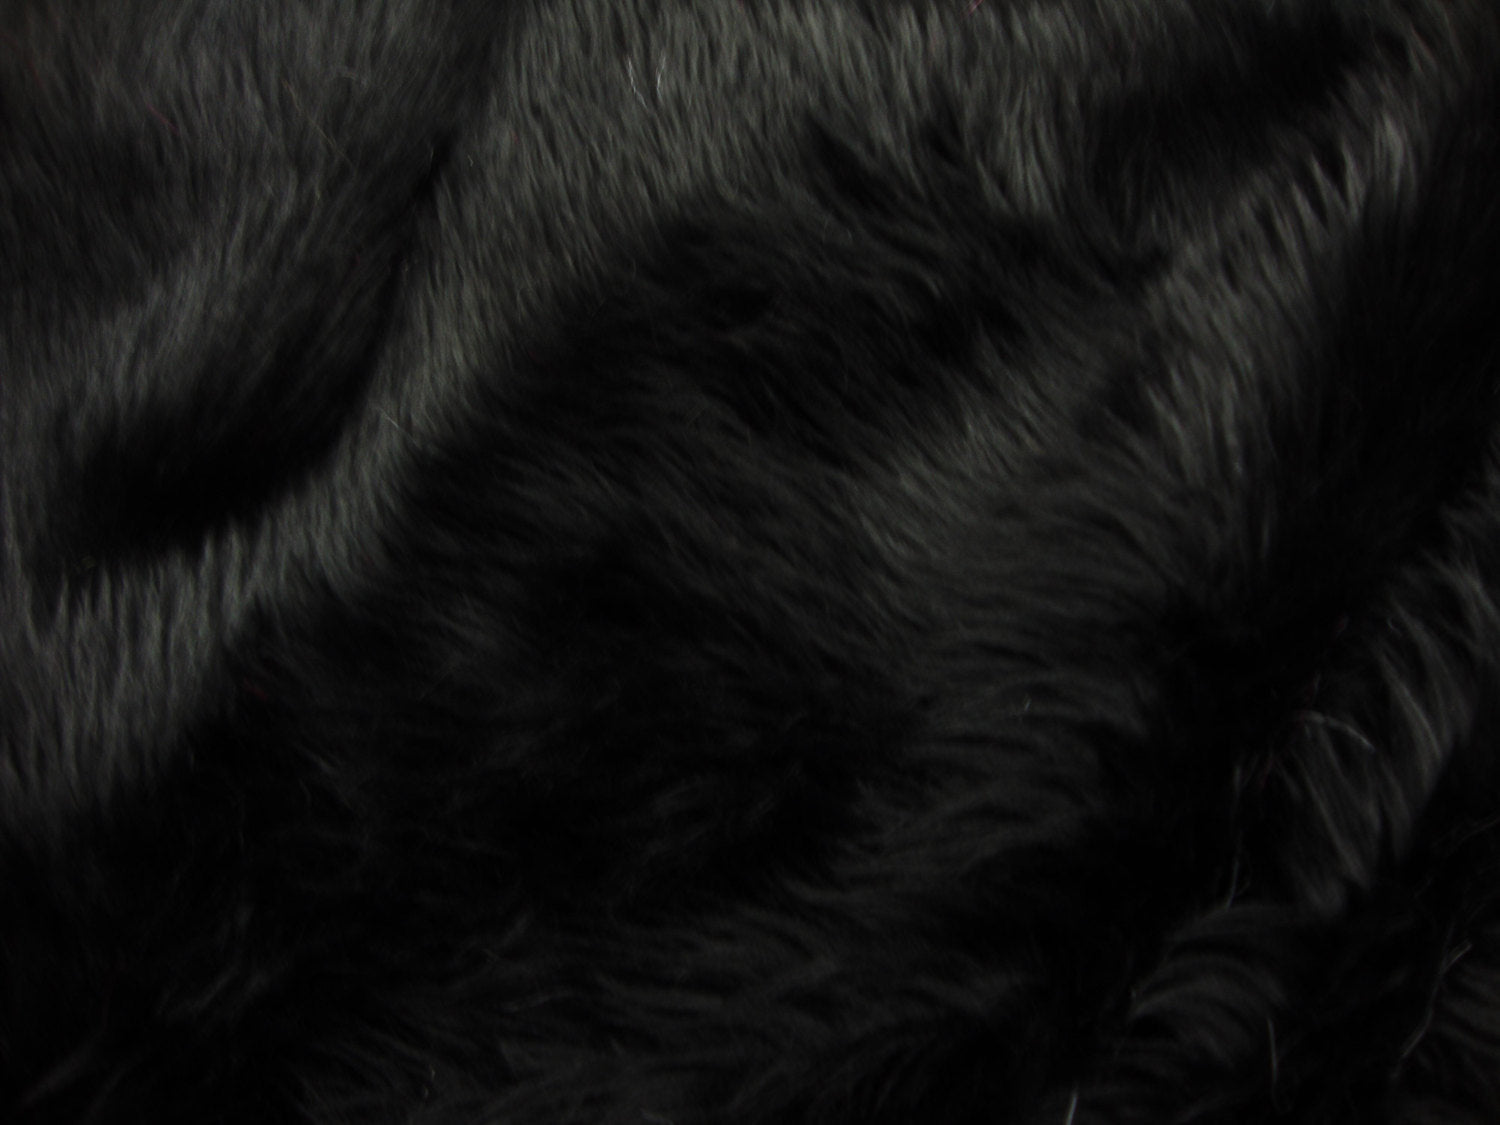 Black Shaggy Plush Faux Fur Rectangular 3'x5' Area Rug || Home Decor